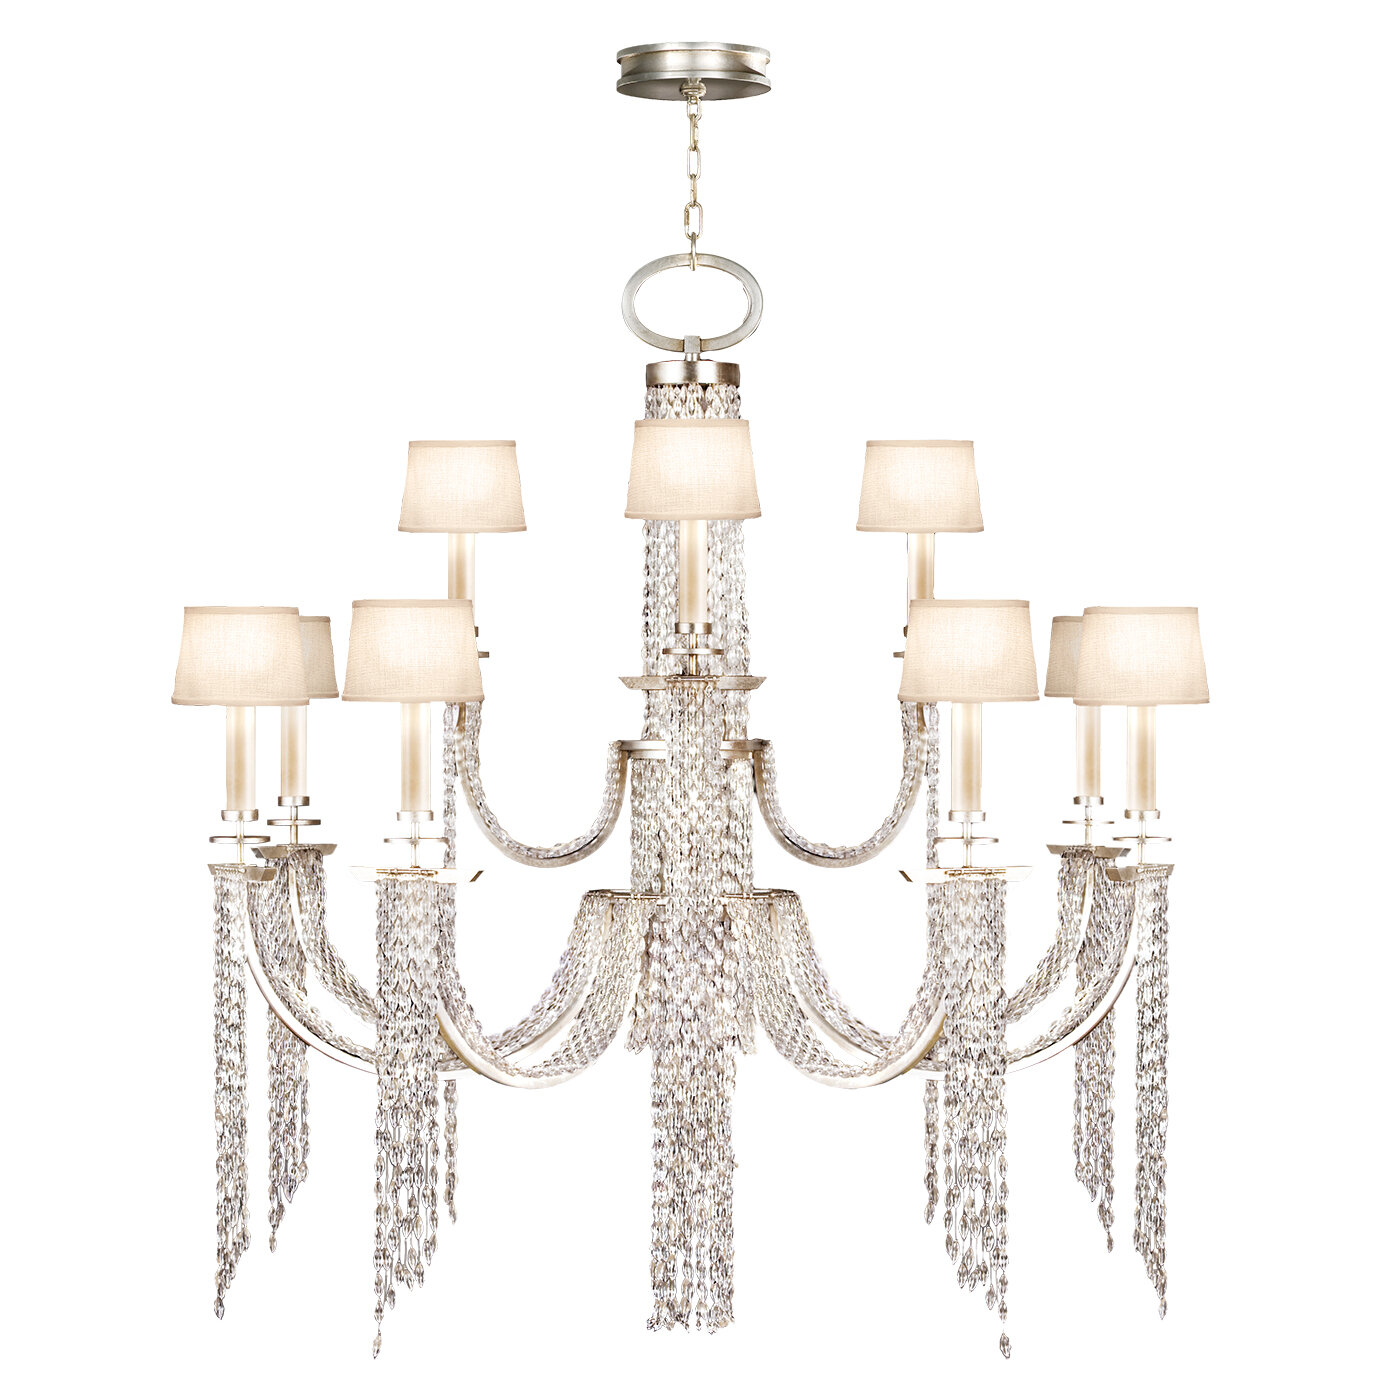 Fine Art Lamps Cascades 16 Light Shaded Classic Traditional Chandelier Perigold